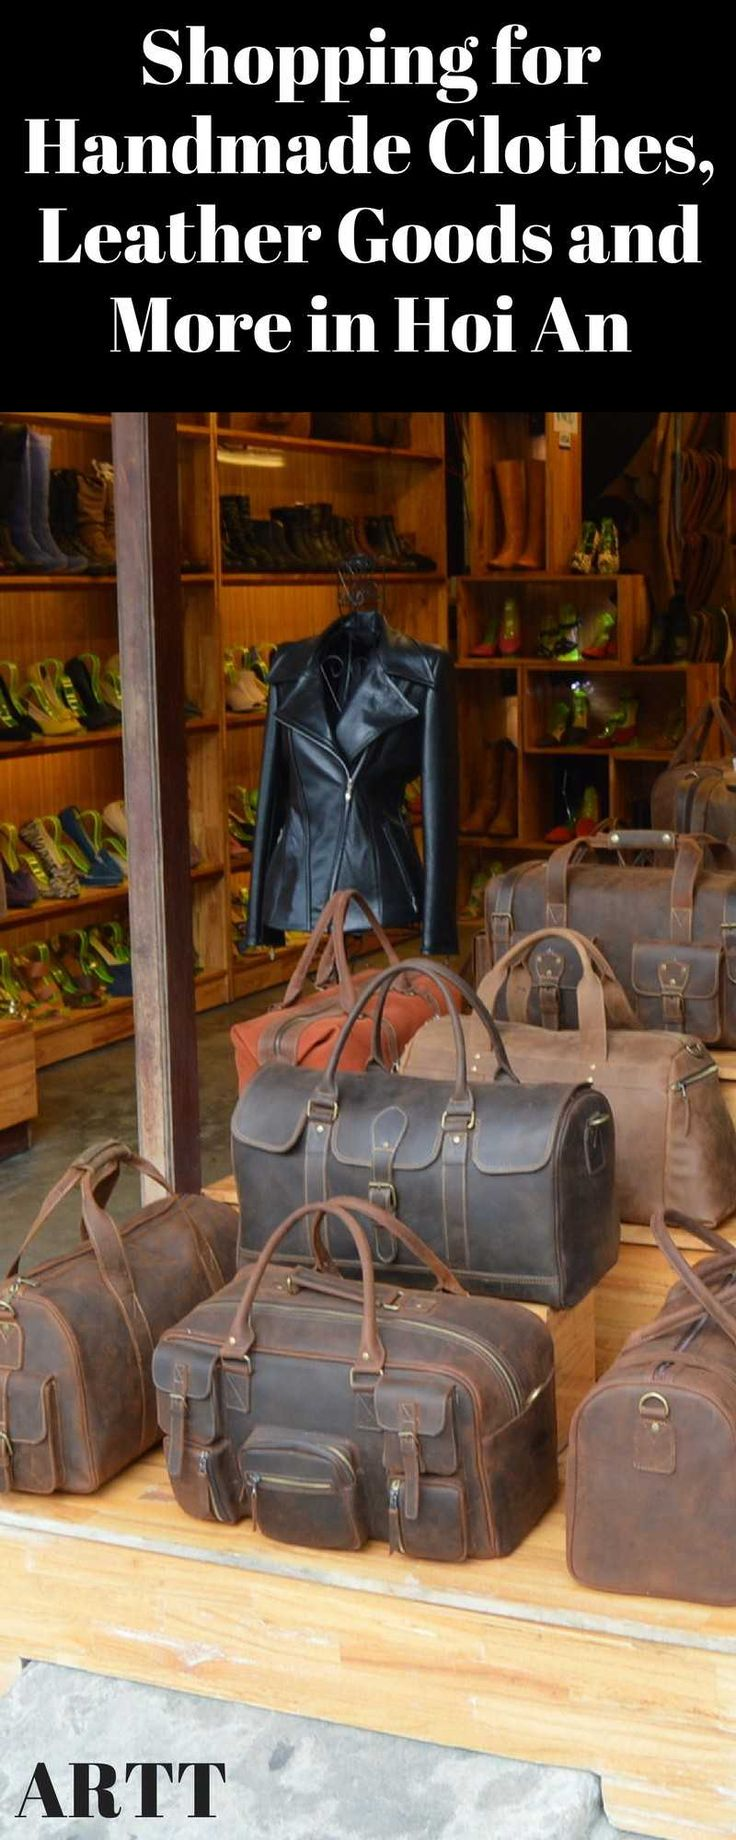 Hoi An Tailors - Designer Leather Goods and Clothing |